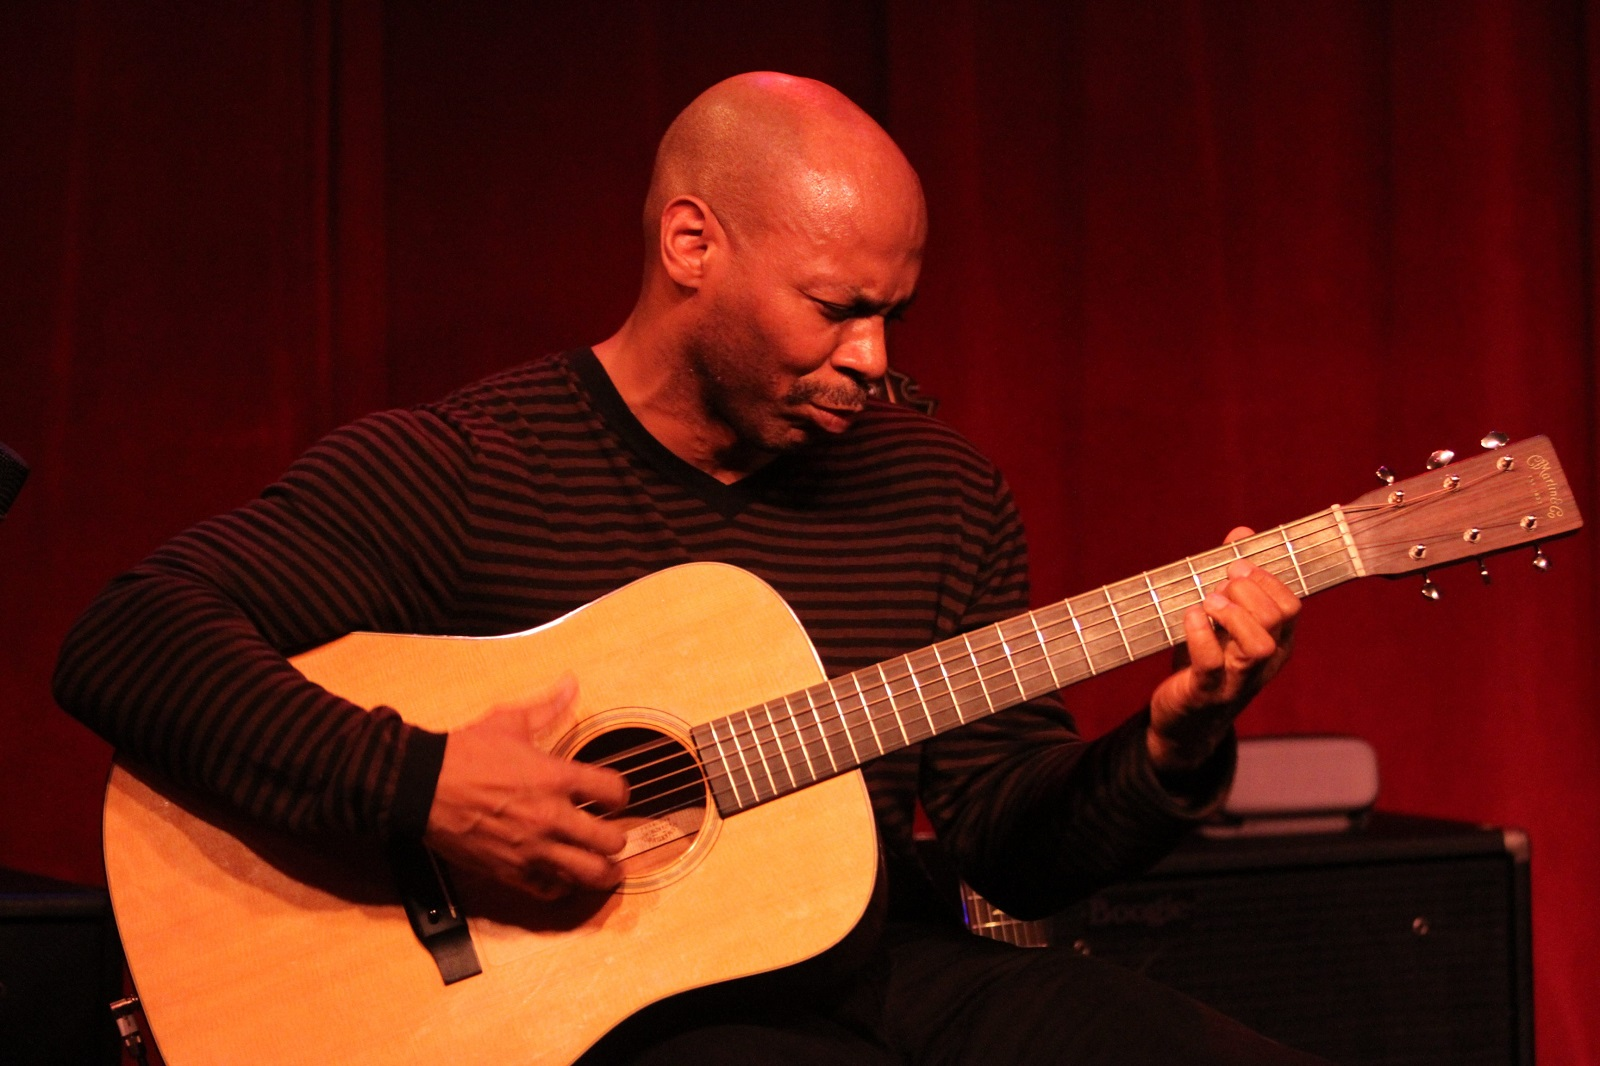 Kevin Eubanks in 2011 performing at Birdland Jazz Club in New York City. (Photo by Cory Schwartz/Getty Images)